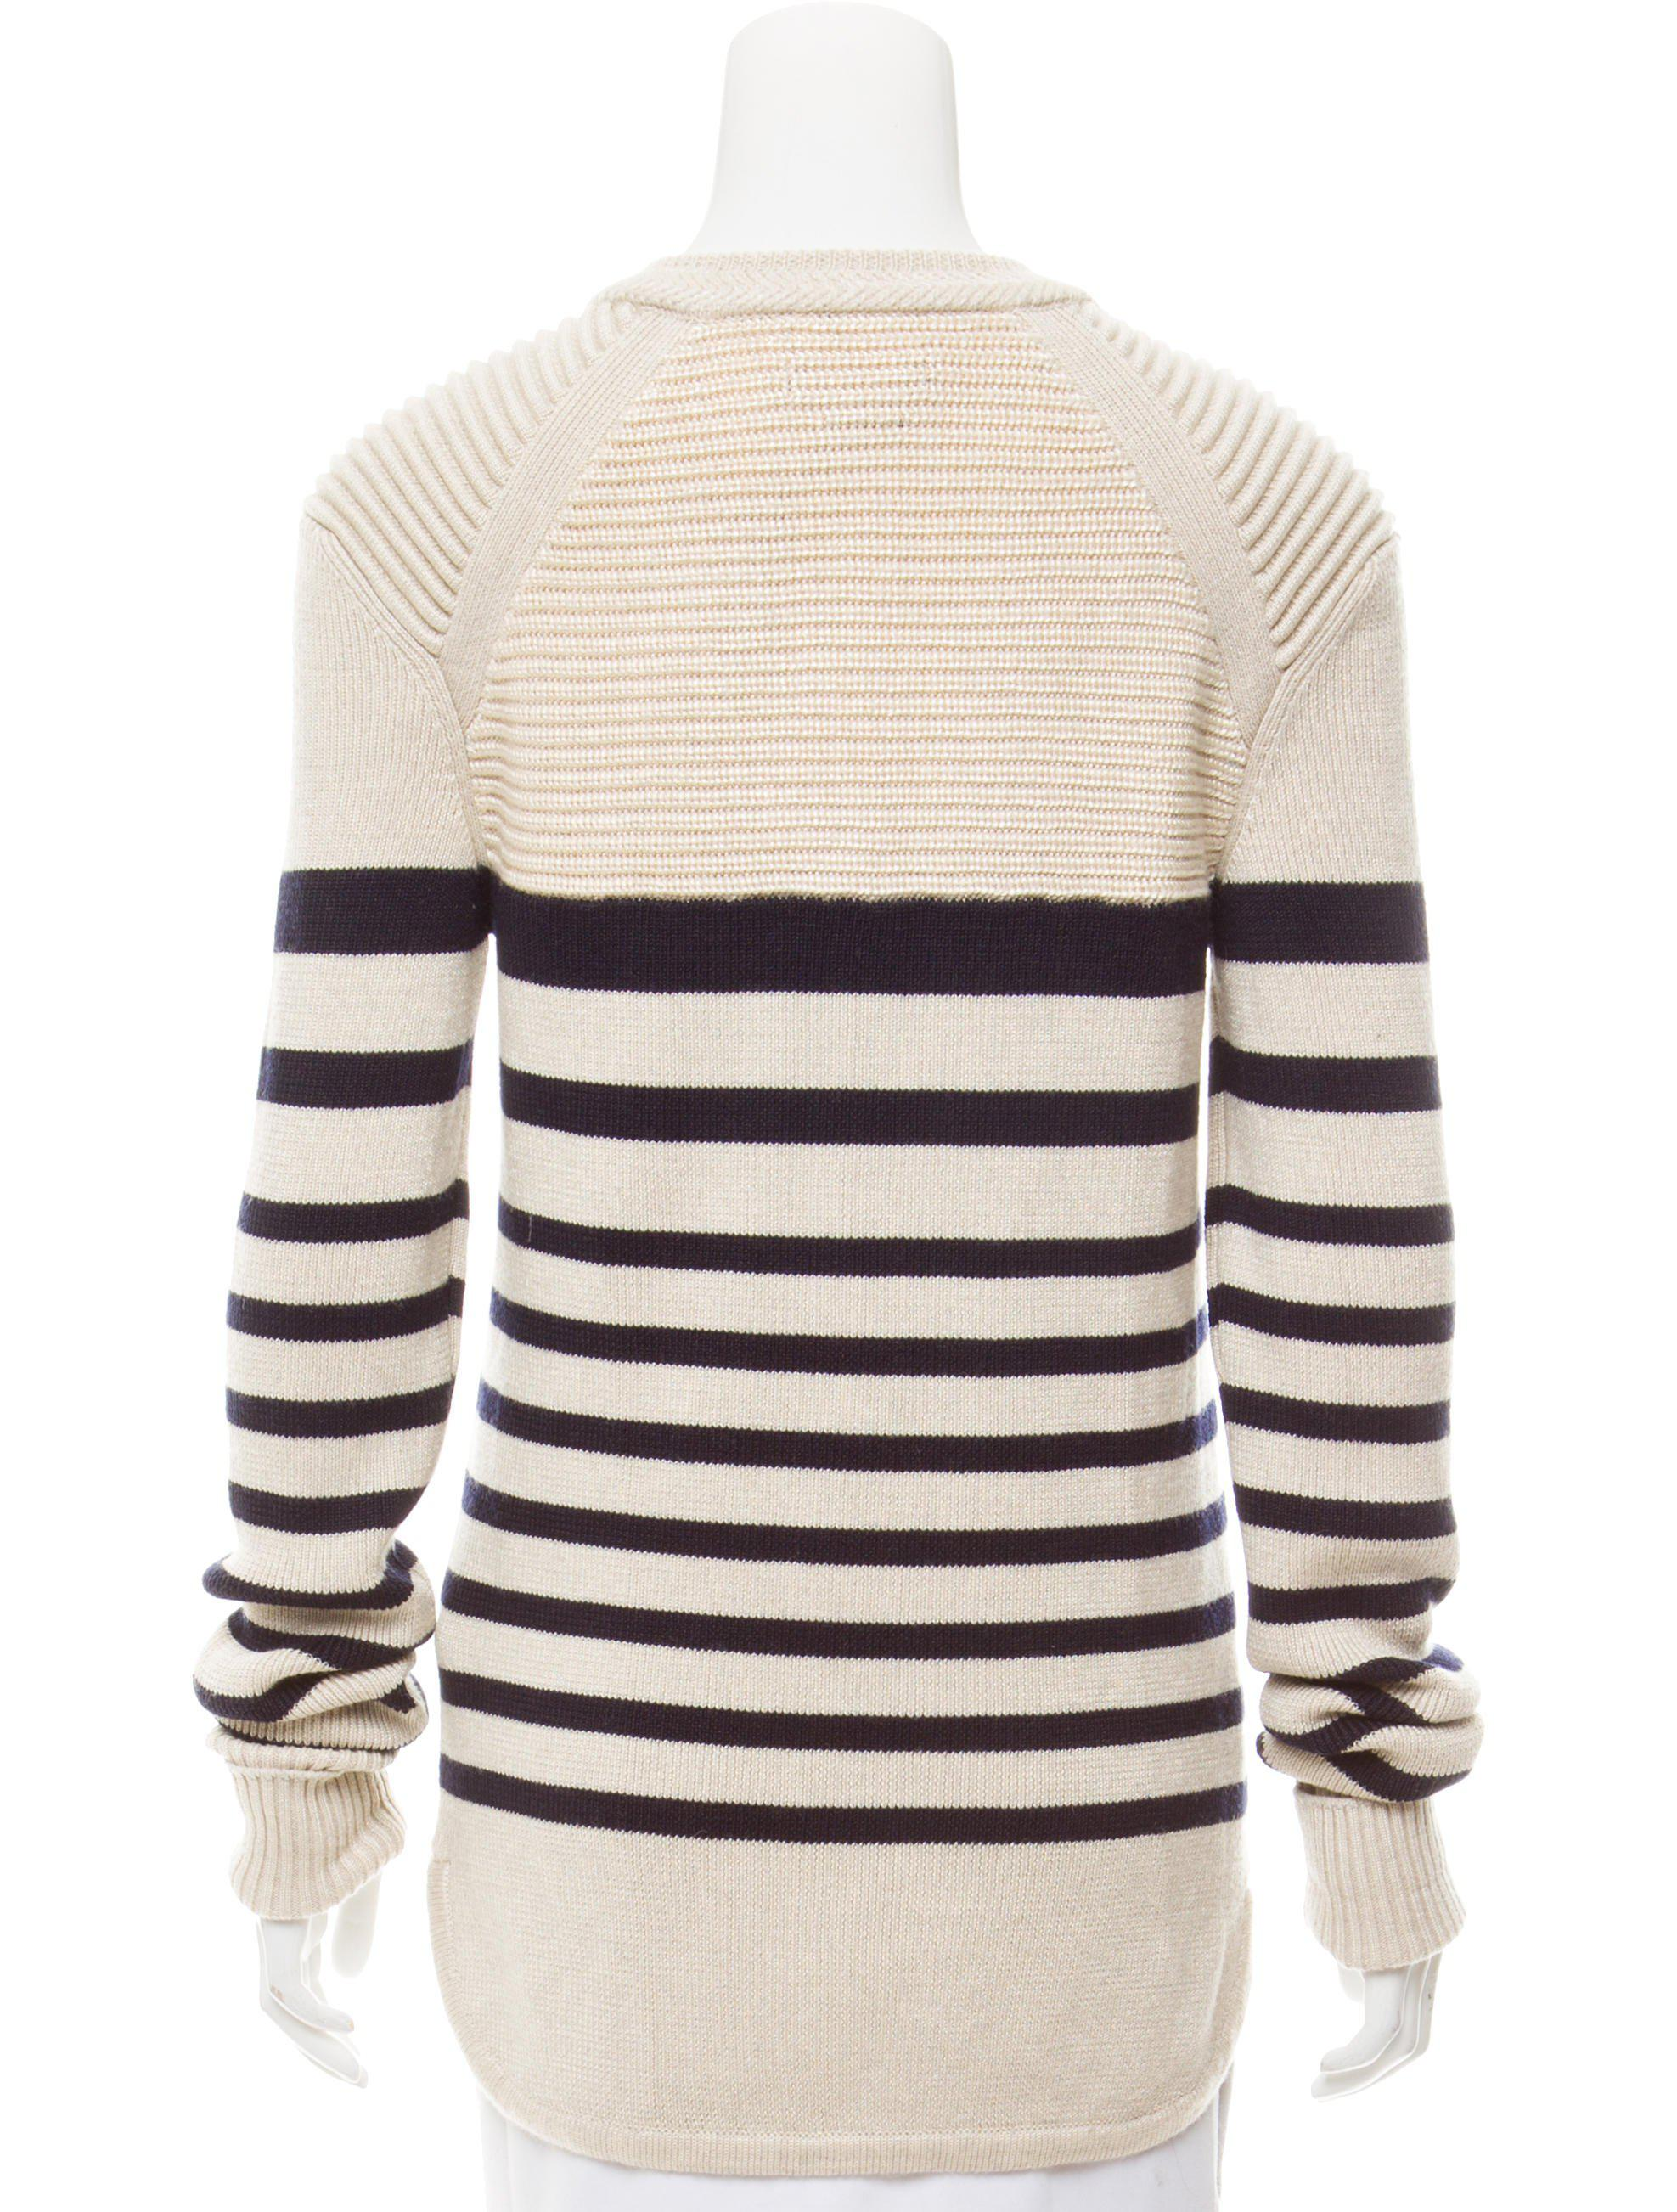 Isabel marant Striped Long Sleeve Sweater Tan in Natural | Lyst